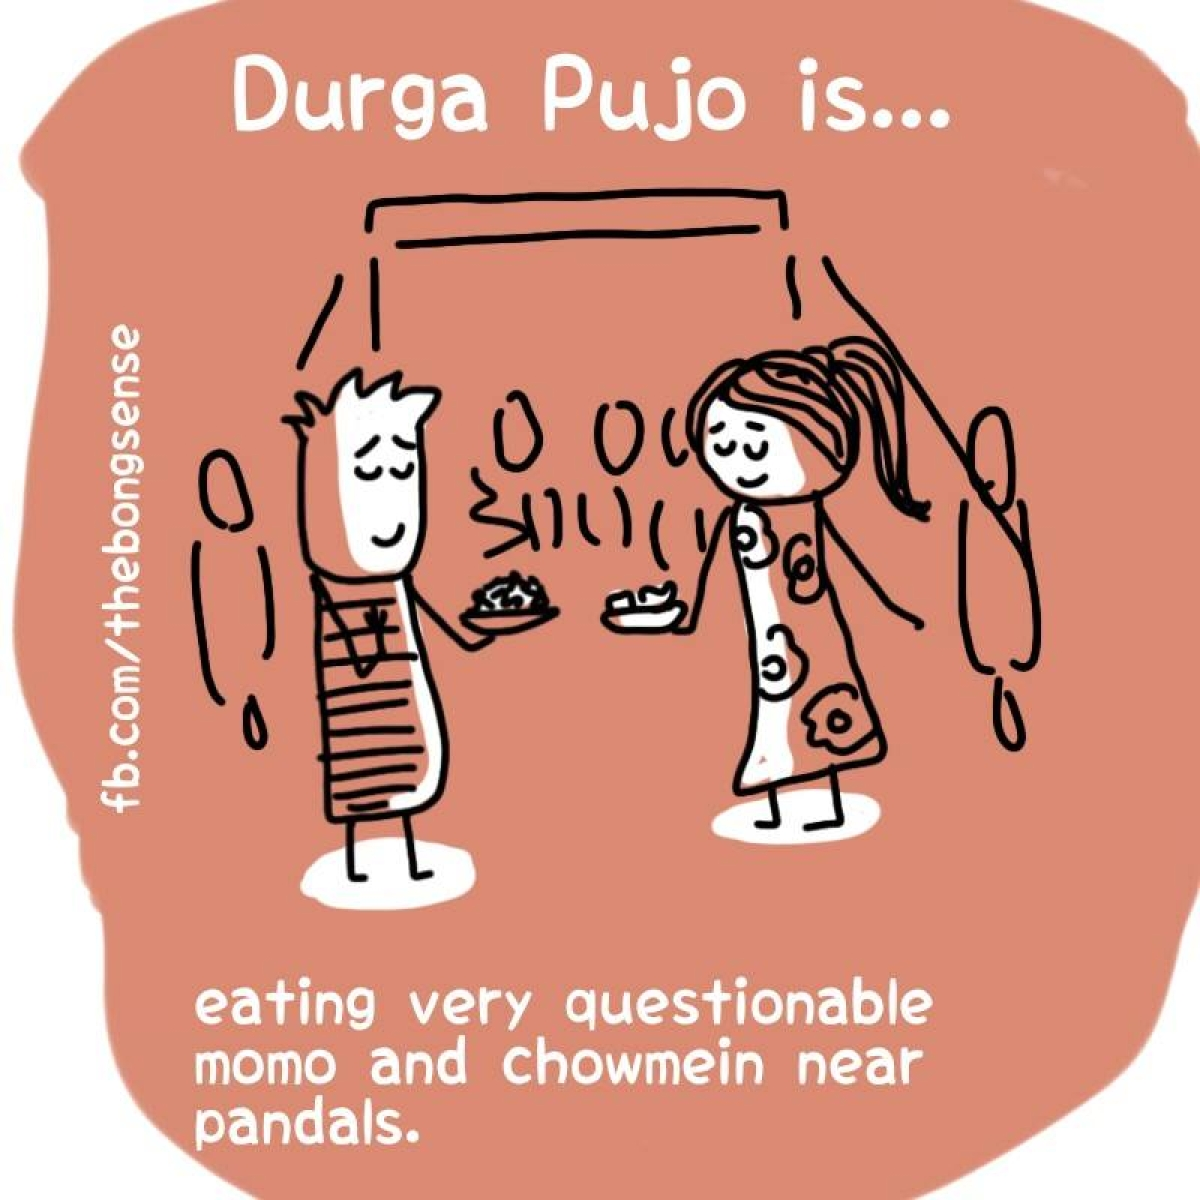 Gear Up for Durga Puja With These Relatable Bengali Memes - The Quint